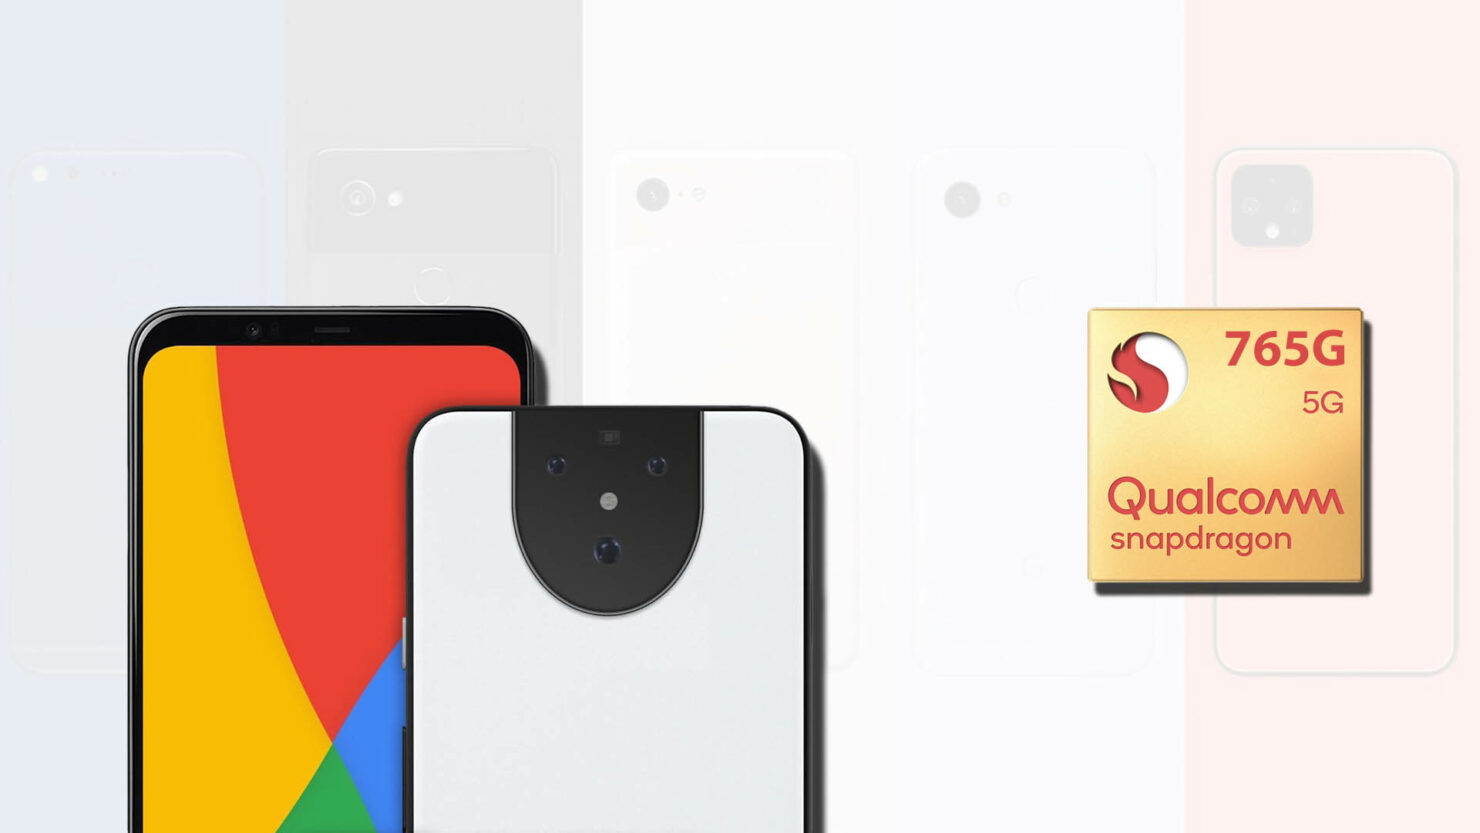 The Google Pixel 5 With Its Rumored Snapdragon 765G, Cheaper Price Could Turn Out to Be Blessing in Disguise